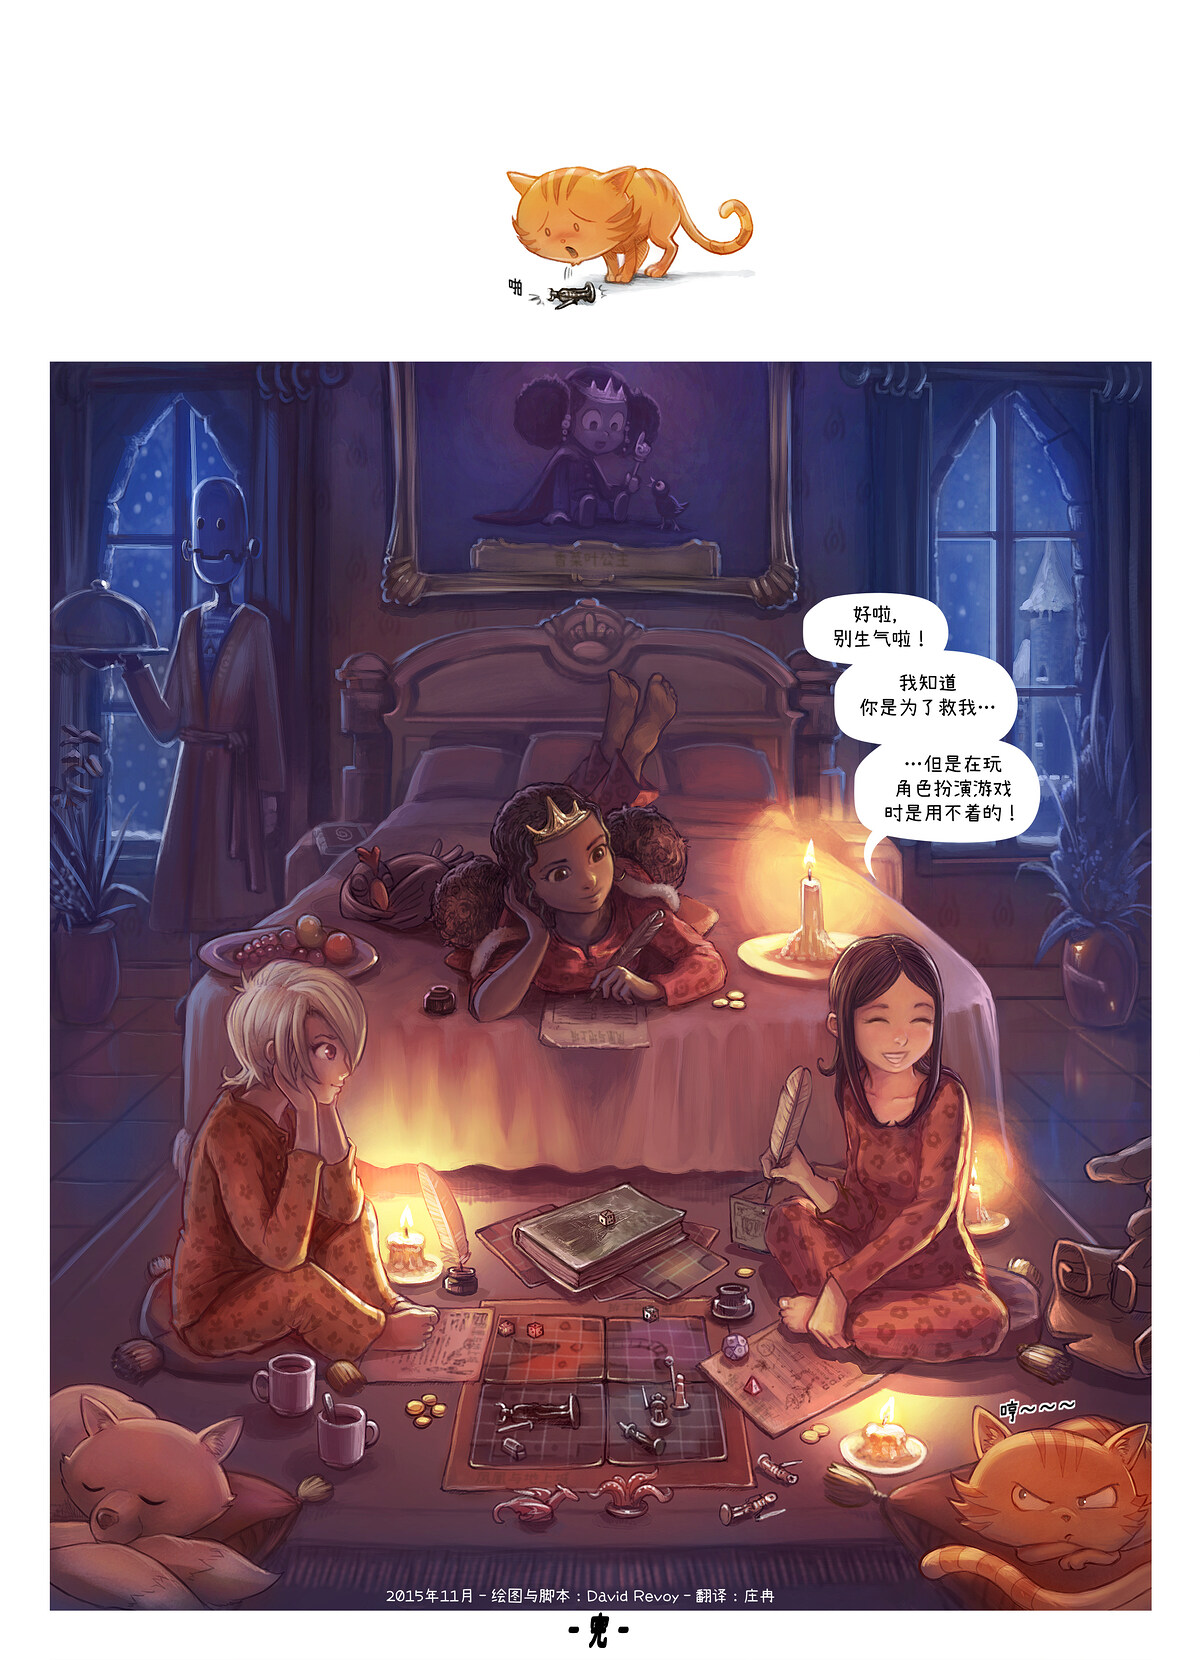 A webcomic page of Pepper&Carrot, 漫画全集 13 [cn], 页面 6